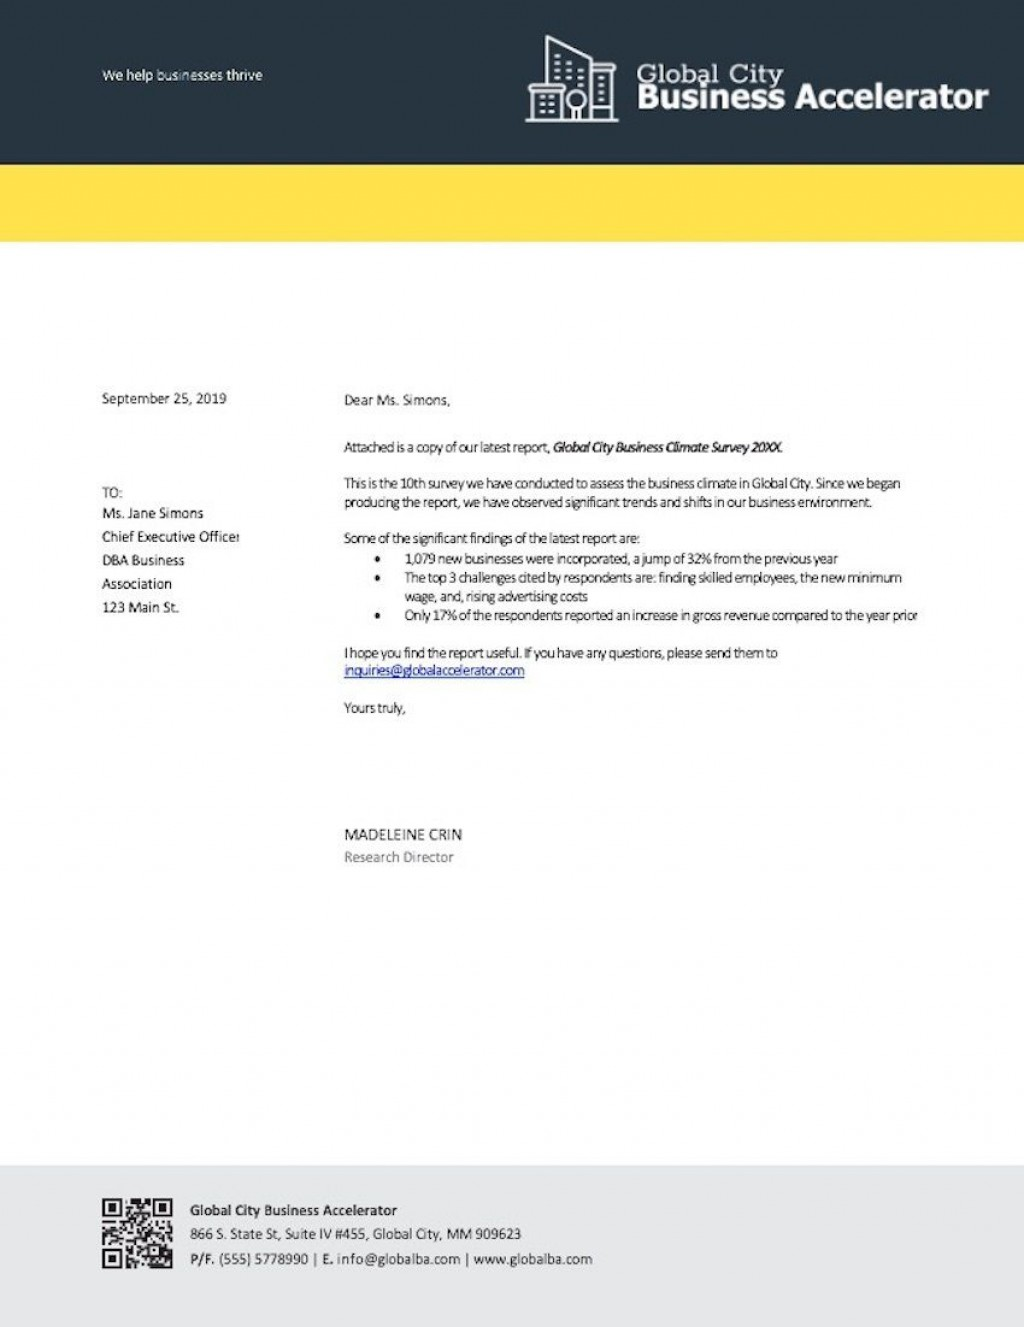 007 Amazing Letter Template M Word Highest Quality  Fax Cover Microsoft Busines AuthorizationLarge